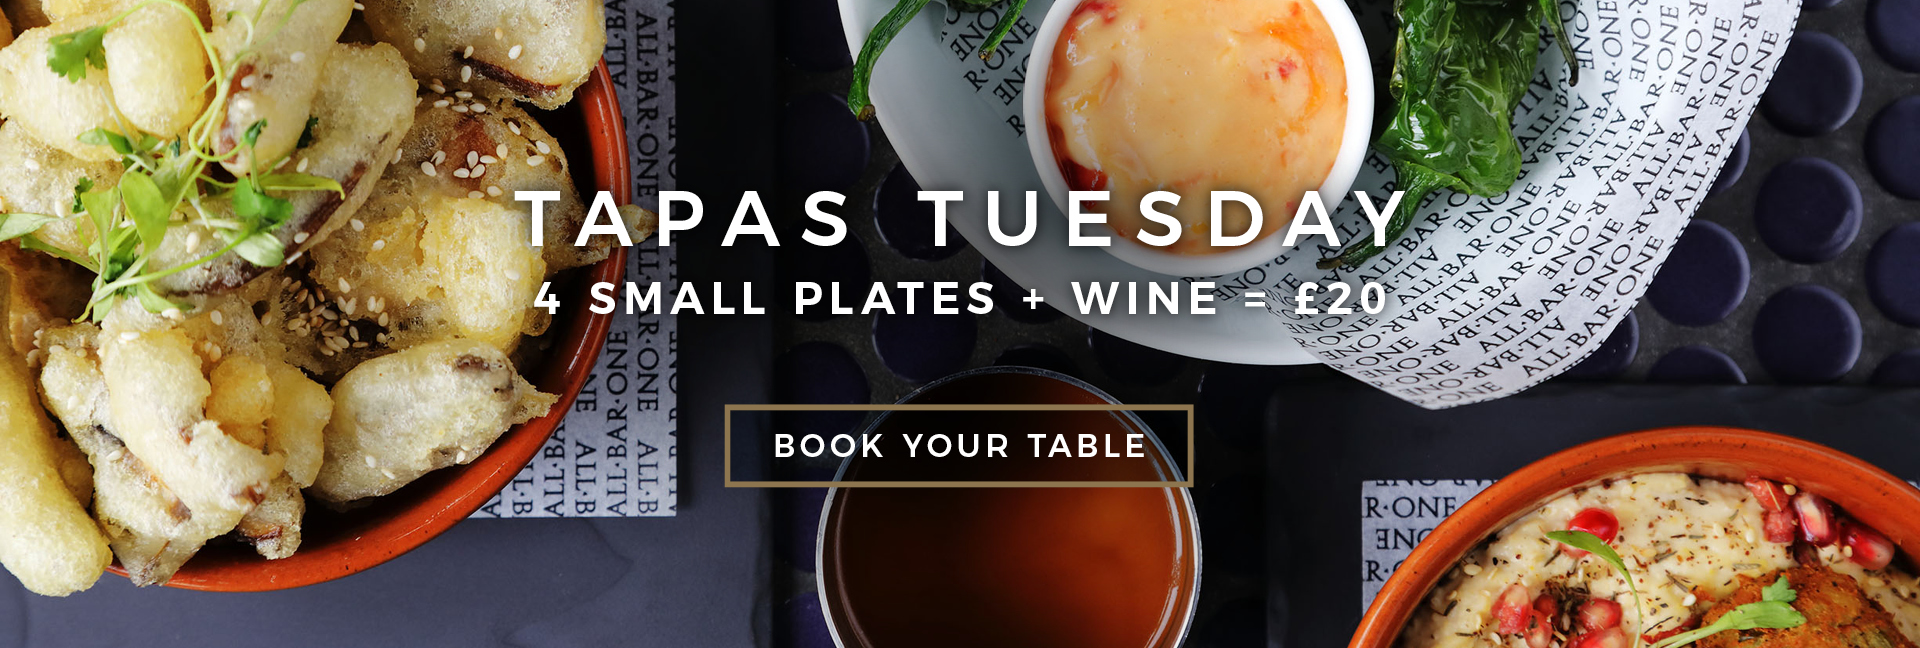 Tapas Tuesday at All Bar One Sheffield - Book now